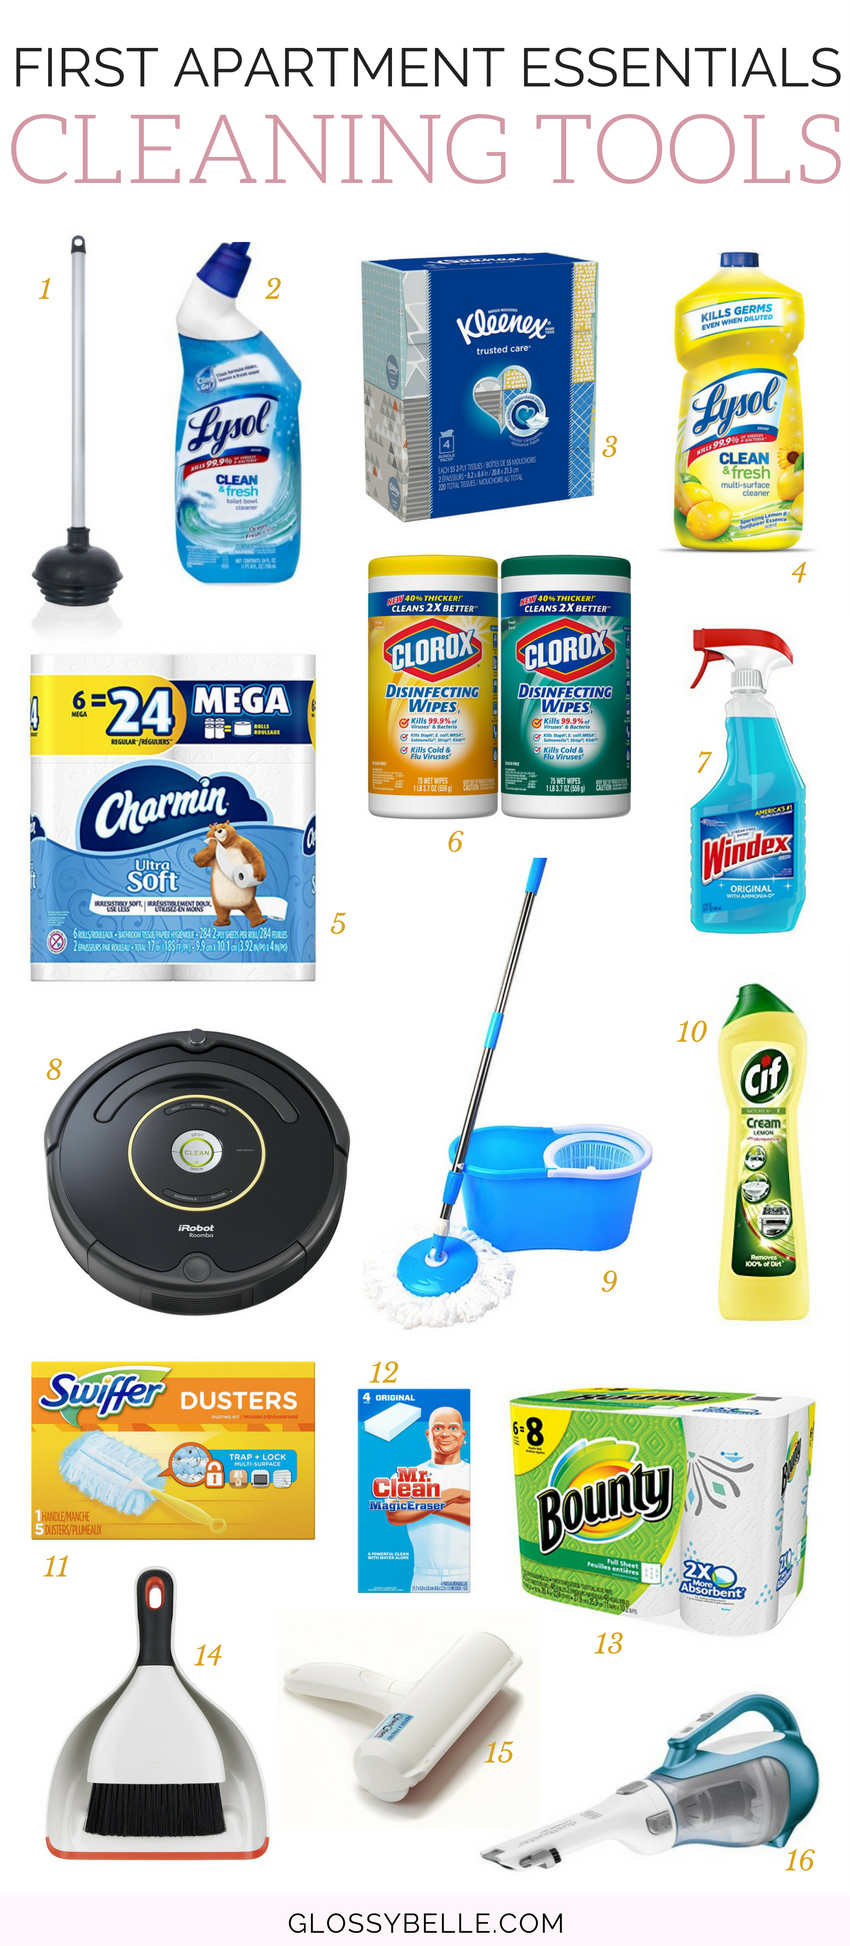 The Ultimate Guide First Apartment Essentials If You Re About To Move Out Into Your Here Are Most Important Cleaning